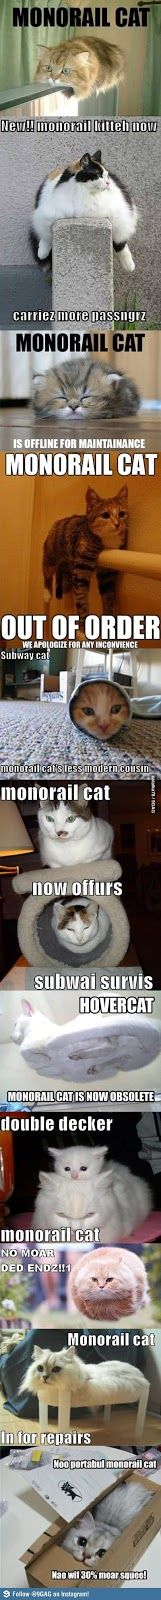 Monorail cats funny meme | Funny weird viral pics